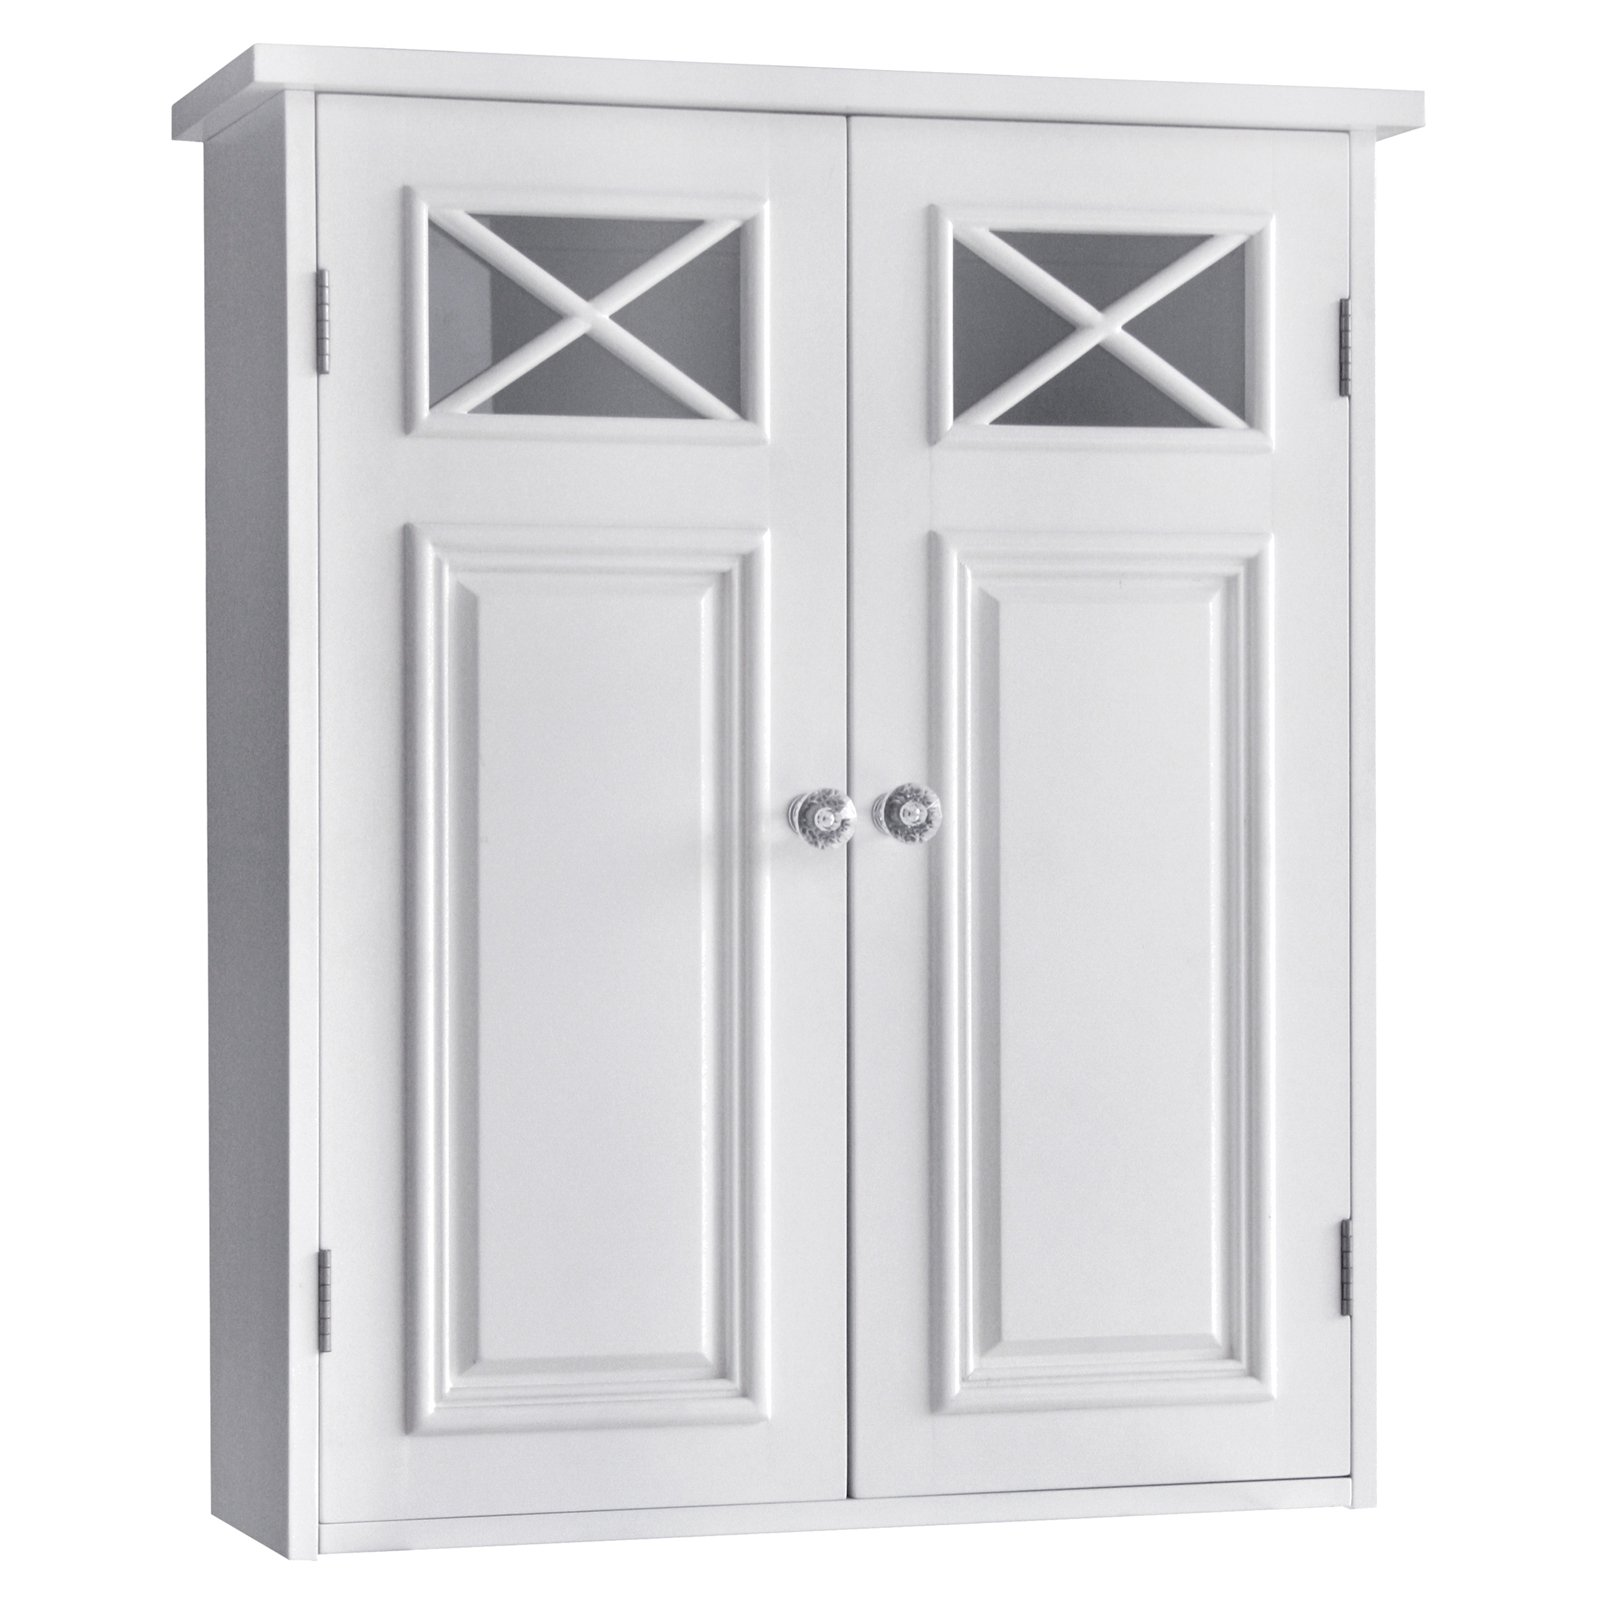 Dawson Wall Cabinet with Two Doors and Shelves Walmart